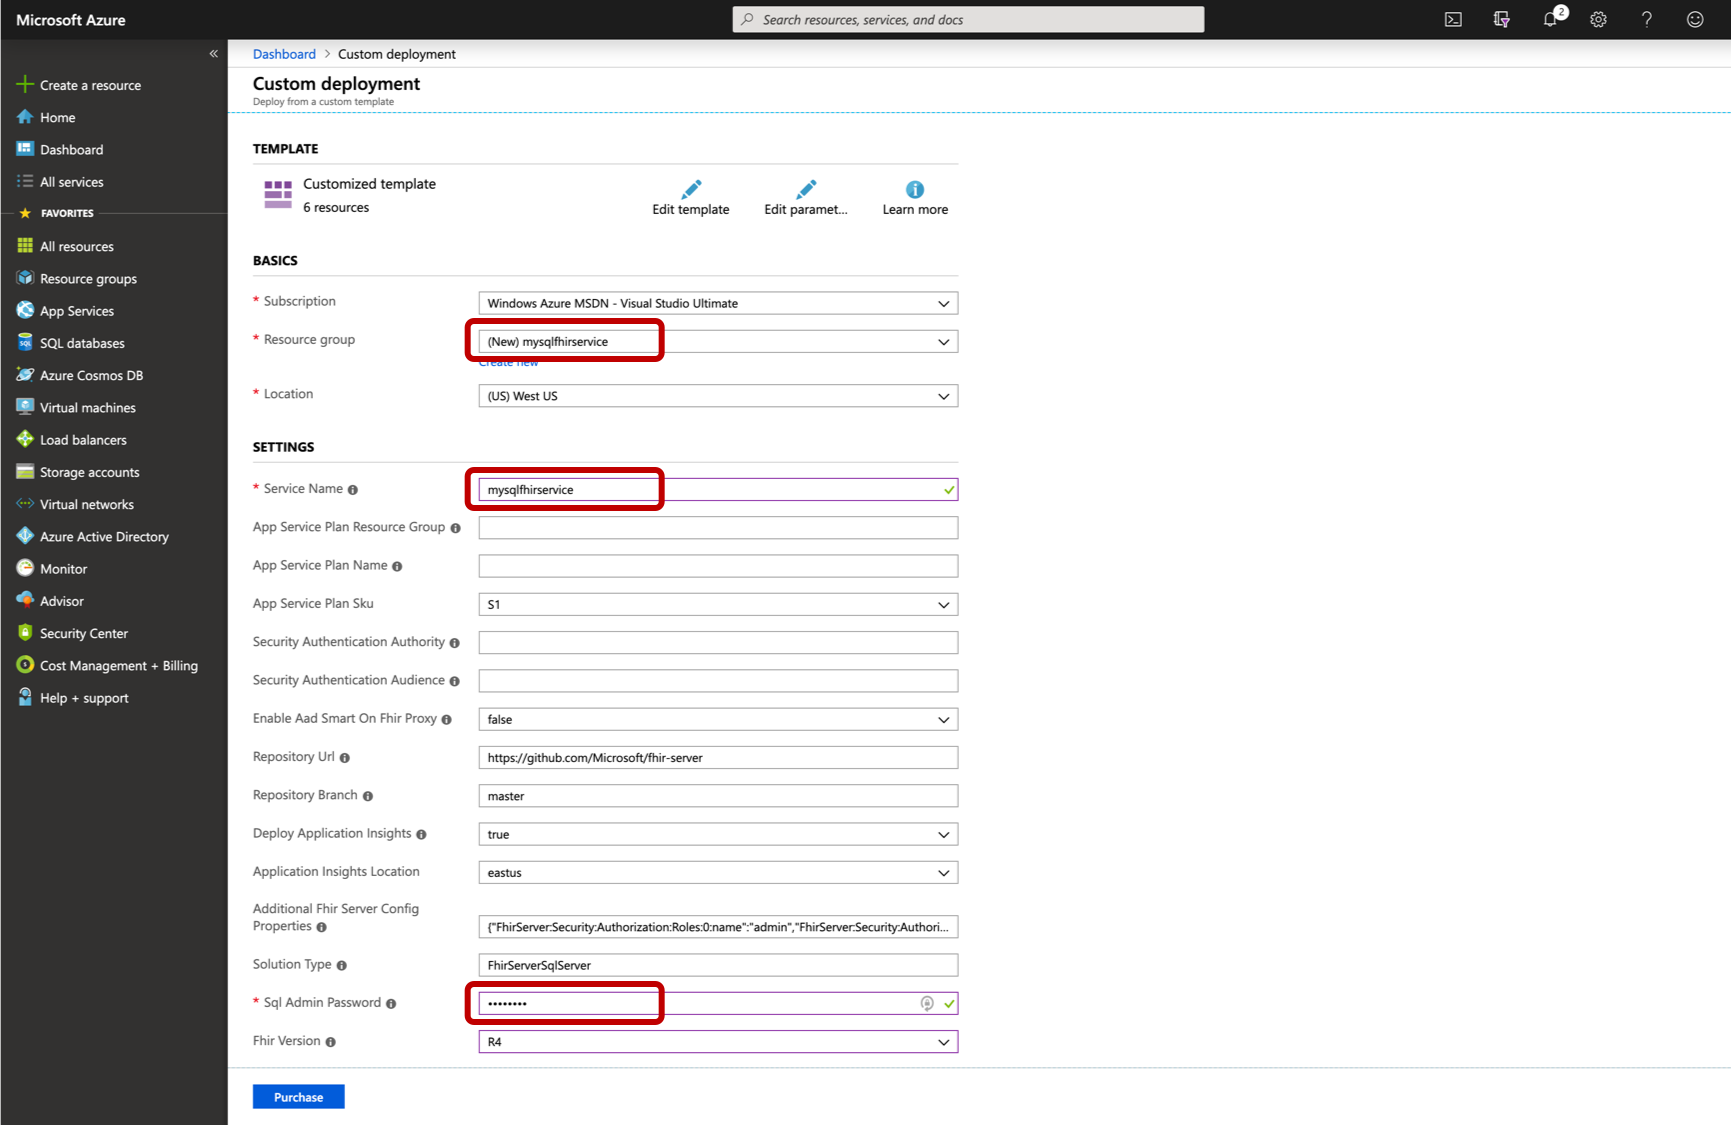 Azure Resource Manager template for deploying the FHIR server wirh a SQL persistence provider